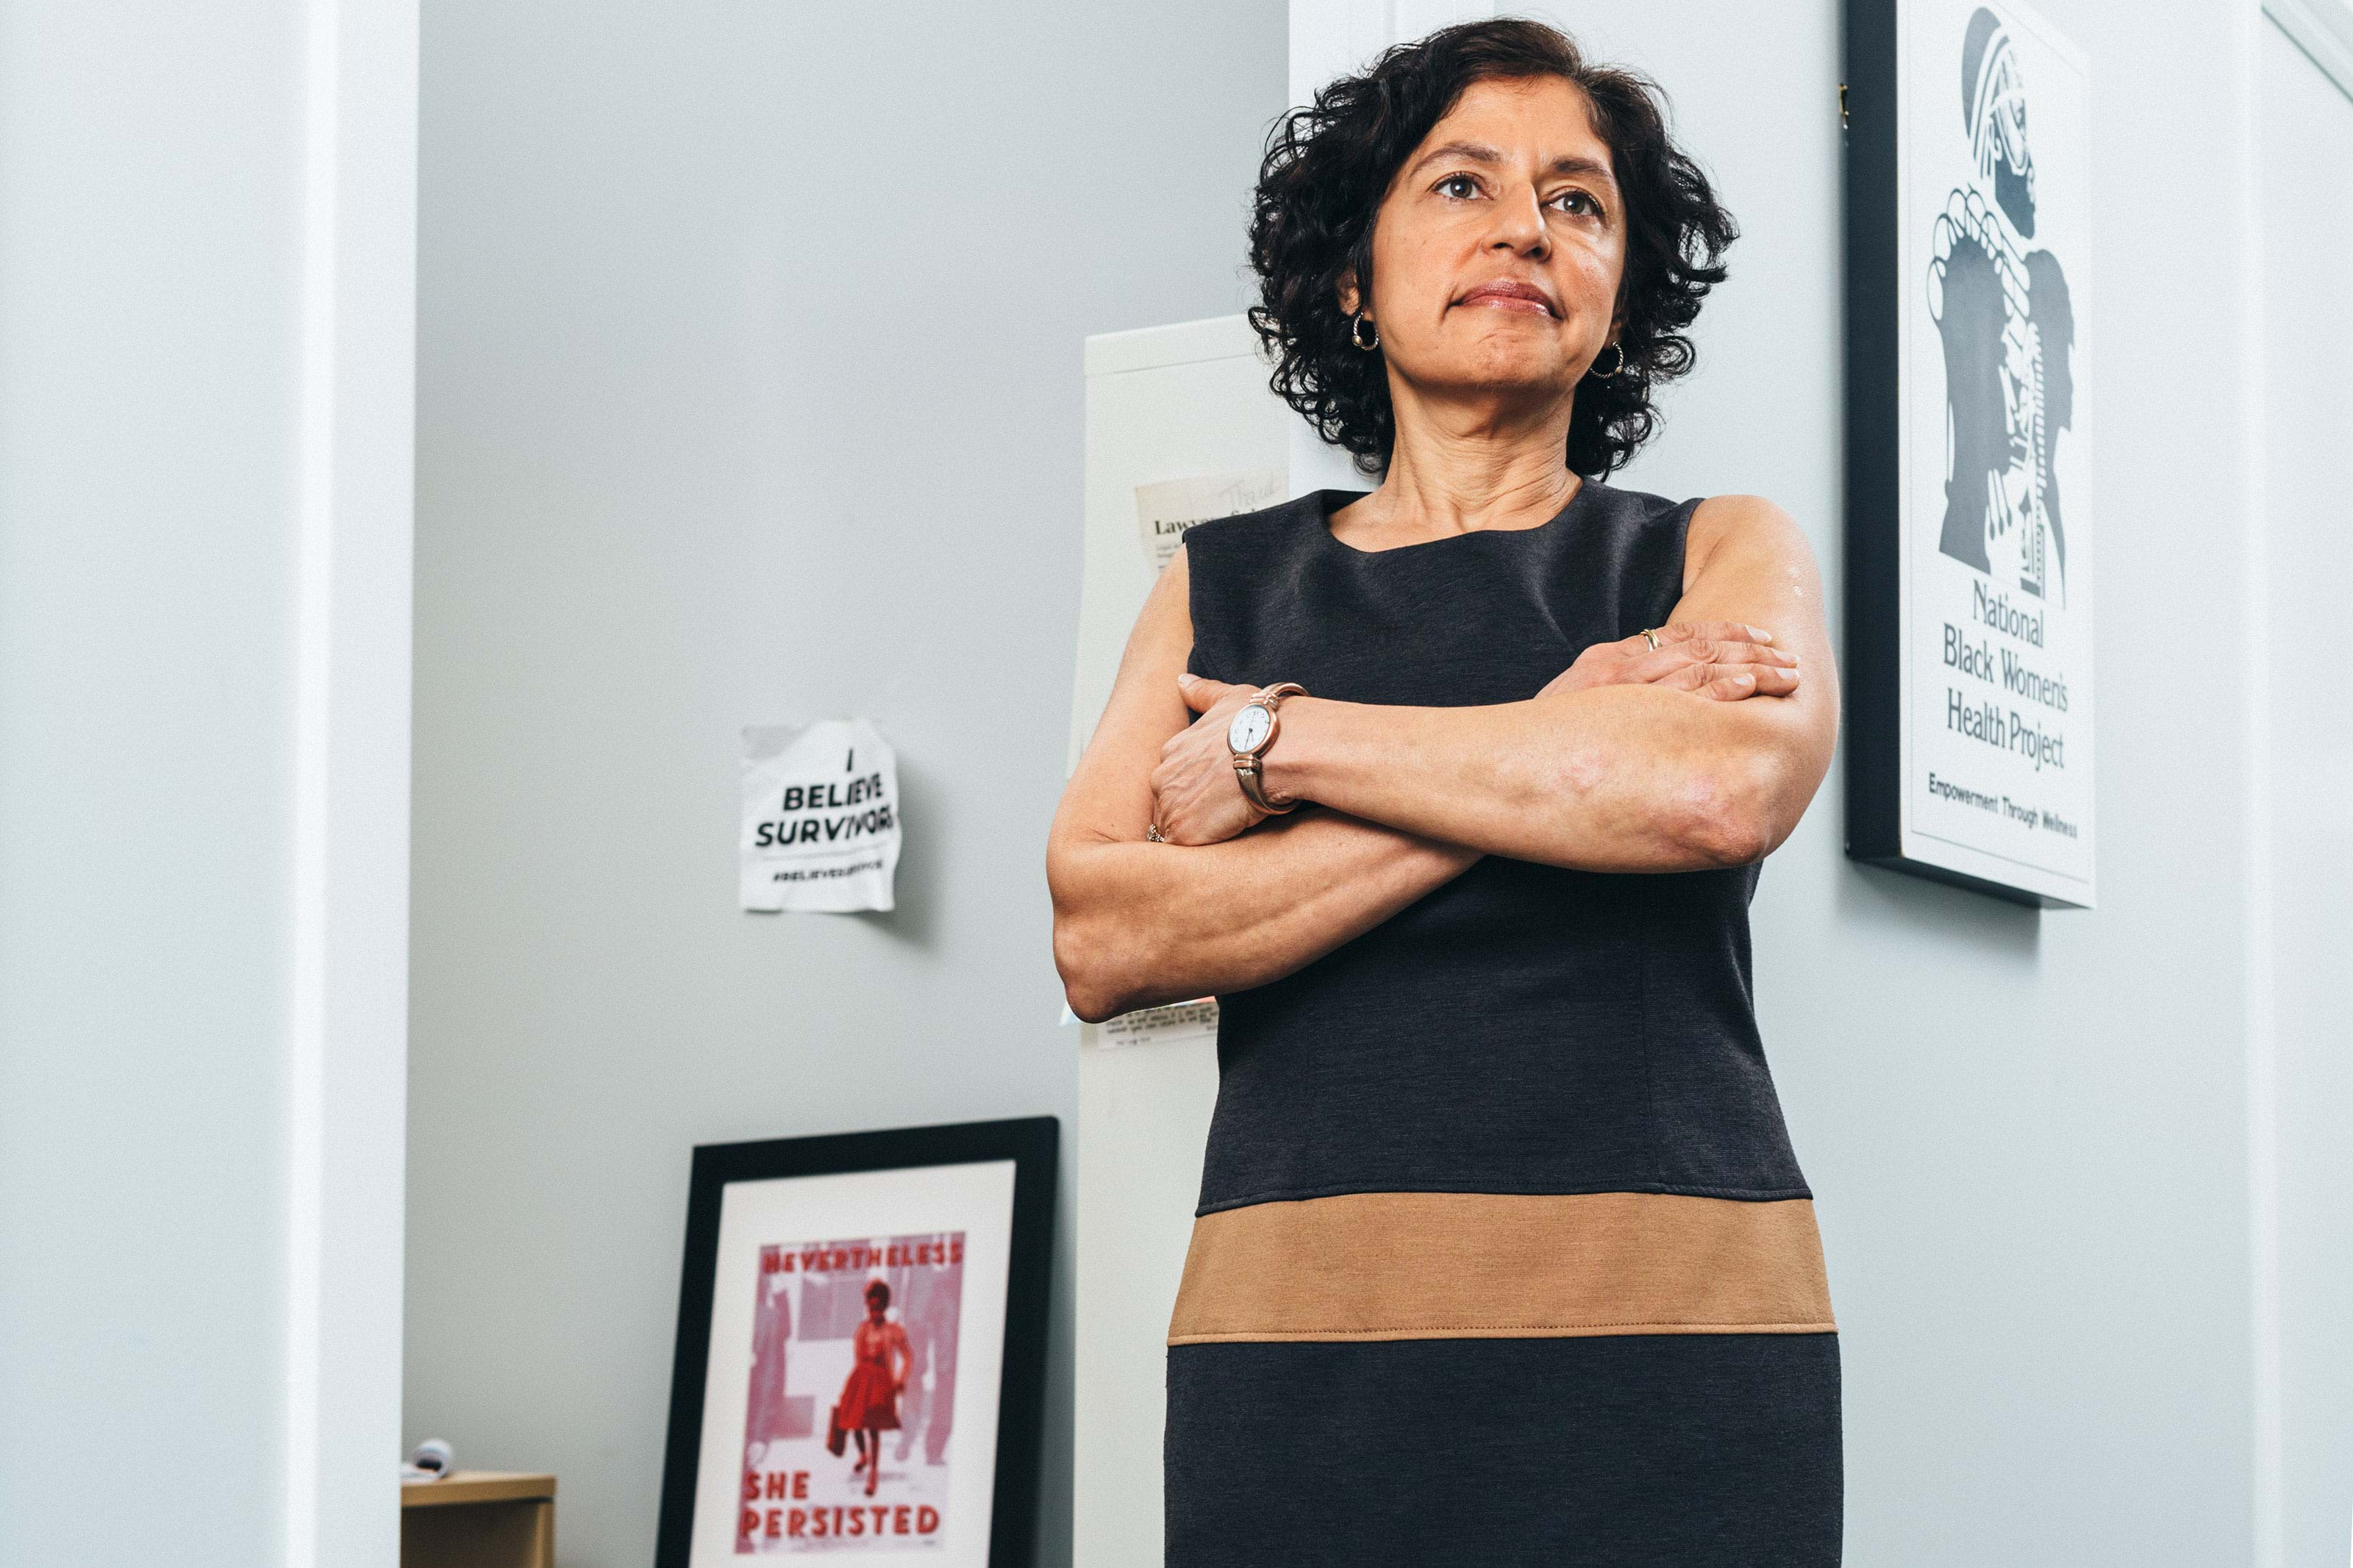 Sharyn Tejani, Director of the TIME'S UP Legal Defense Fund, standing with her arms crossed in her office.